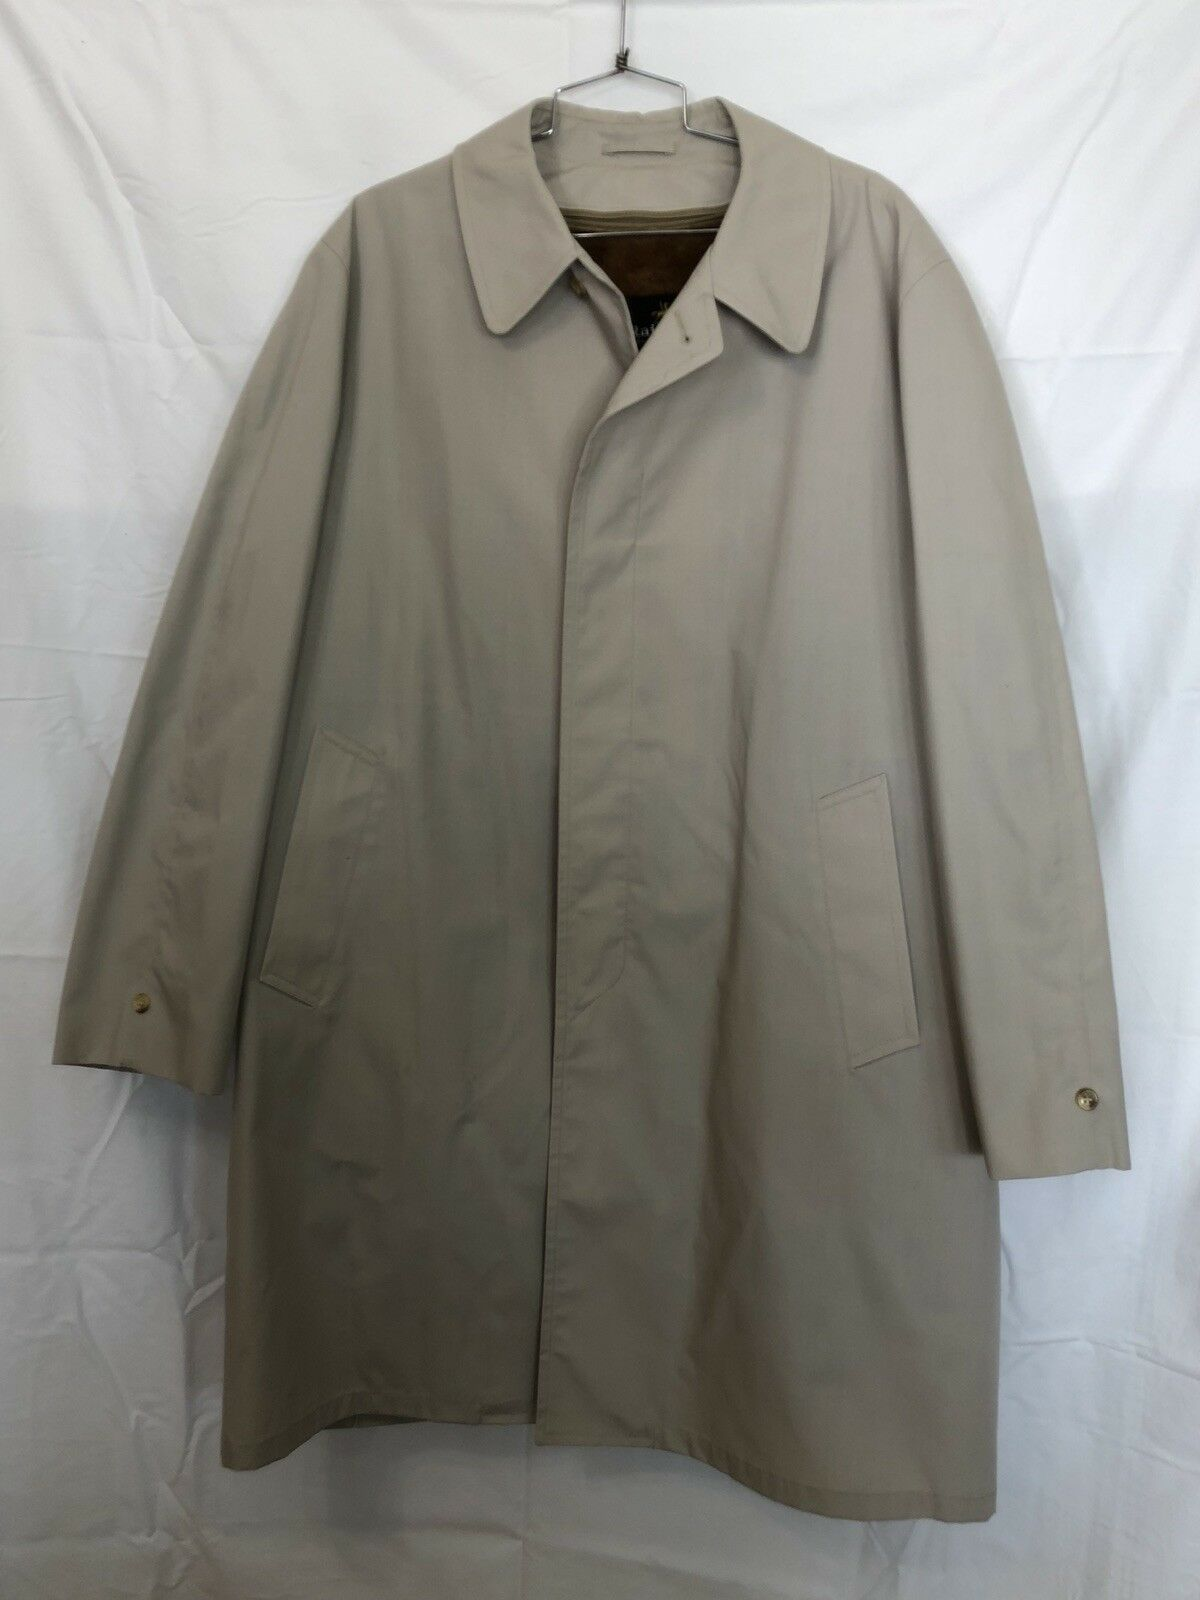 Men's Vintage Rainfair Rain Top Coat Size 46